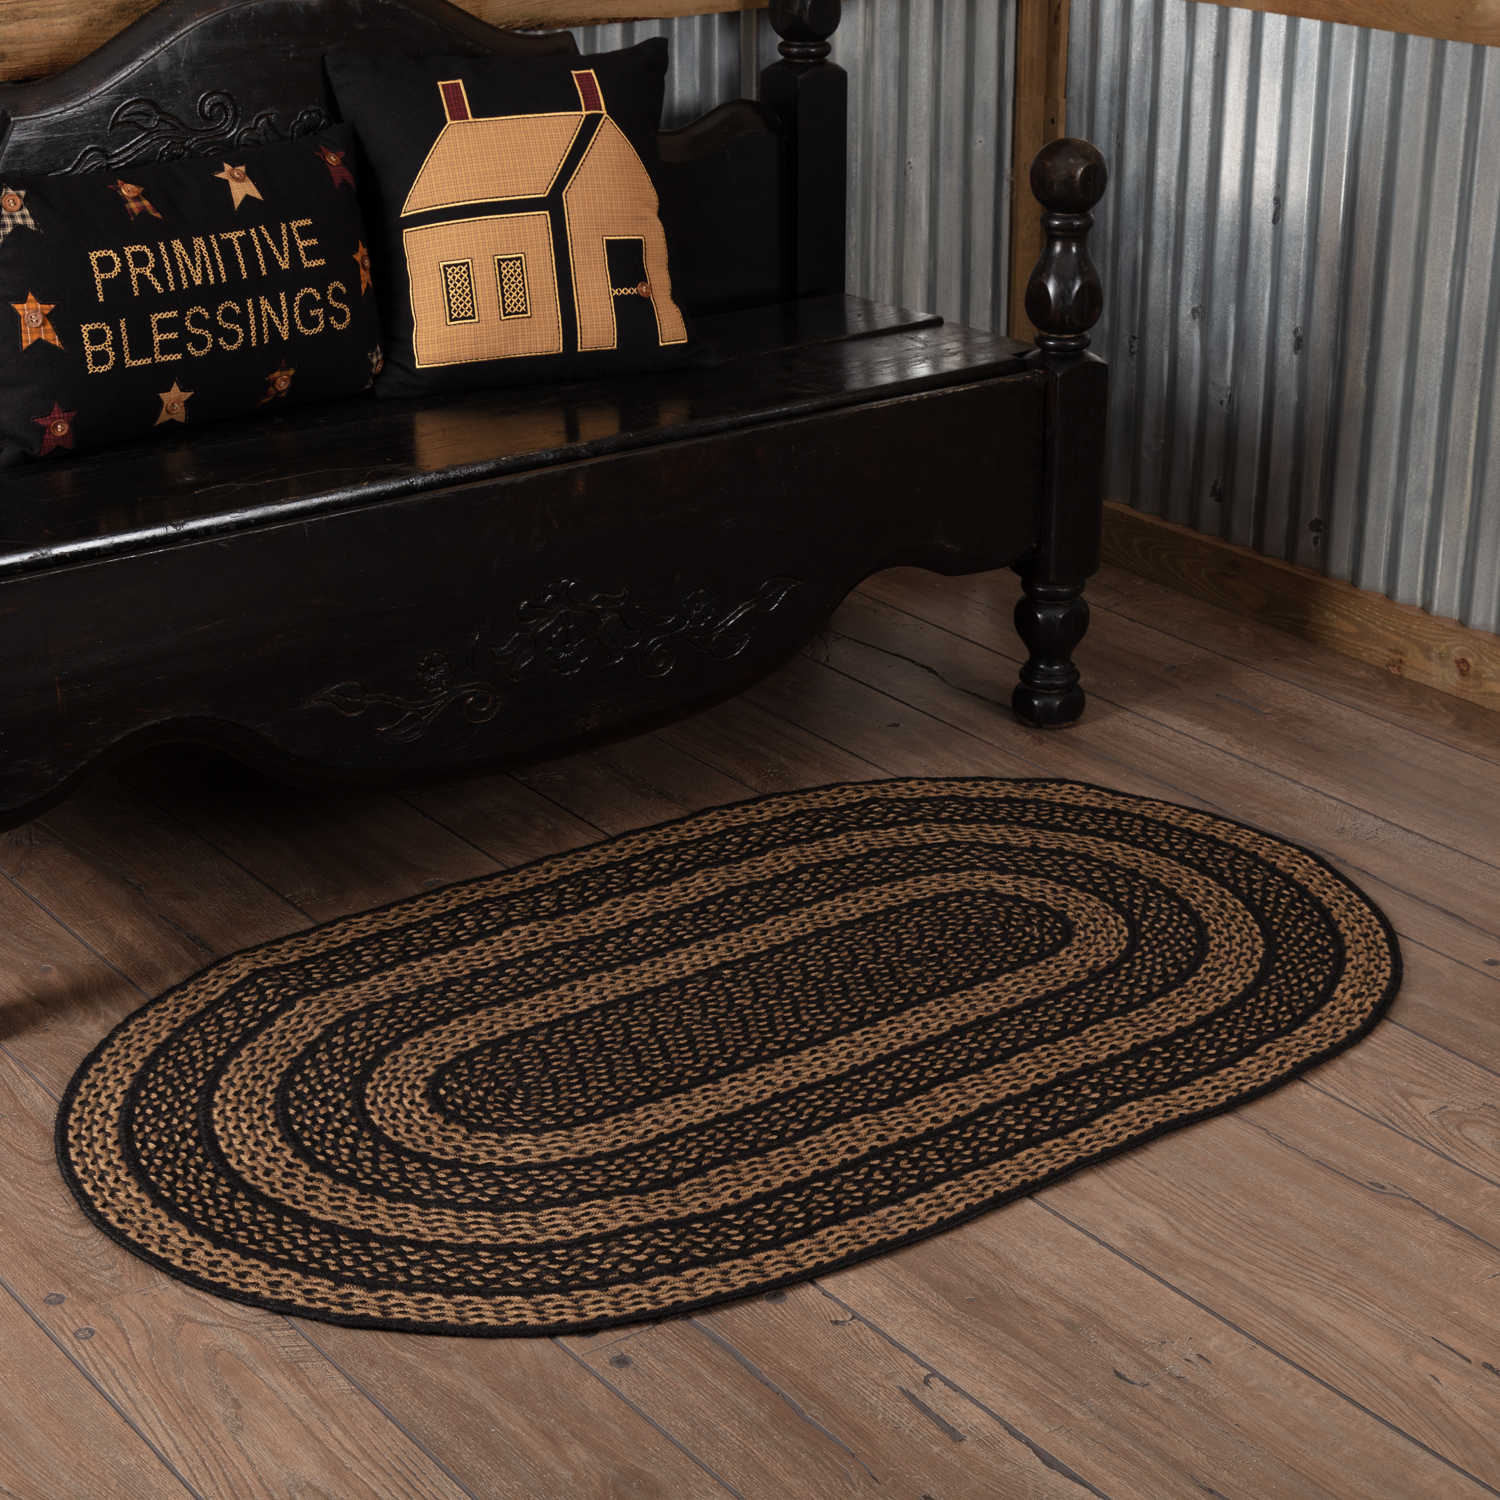 Country Black Primitive Flooring Black Stencil Star Jute Oval Accent Rug